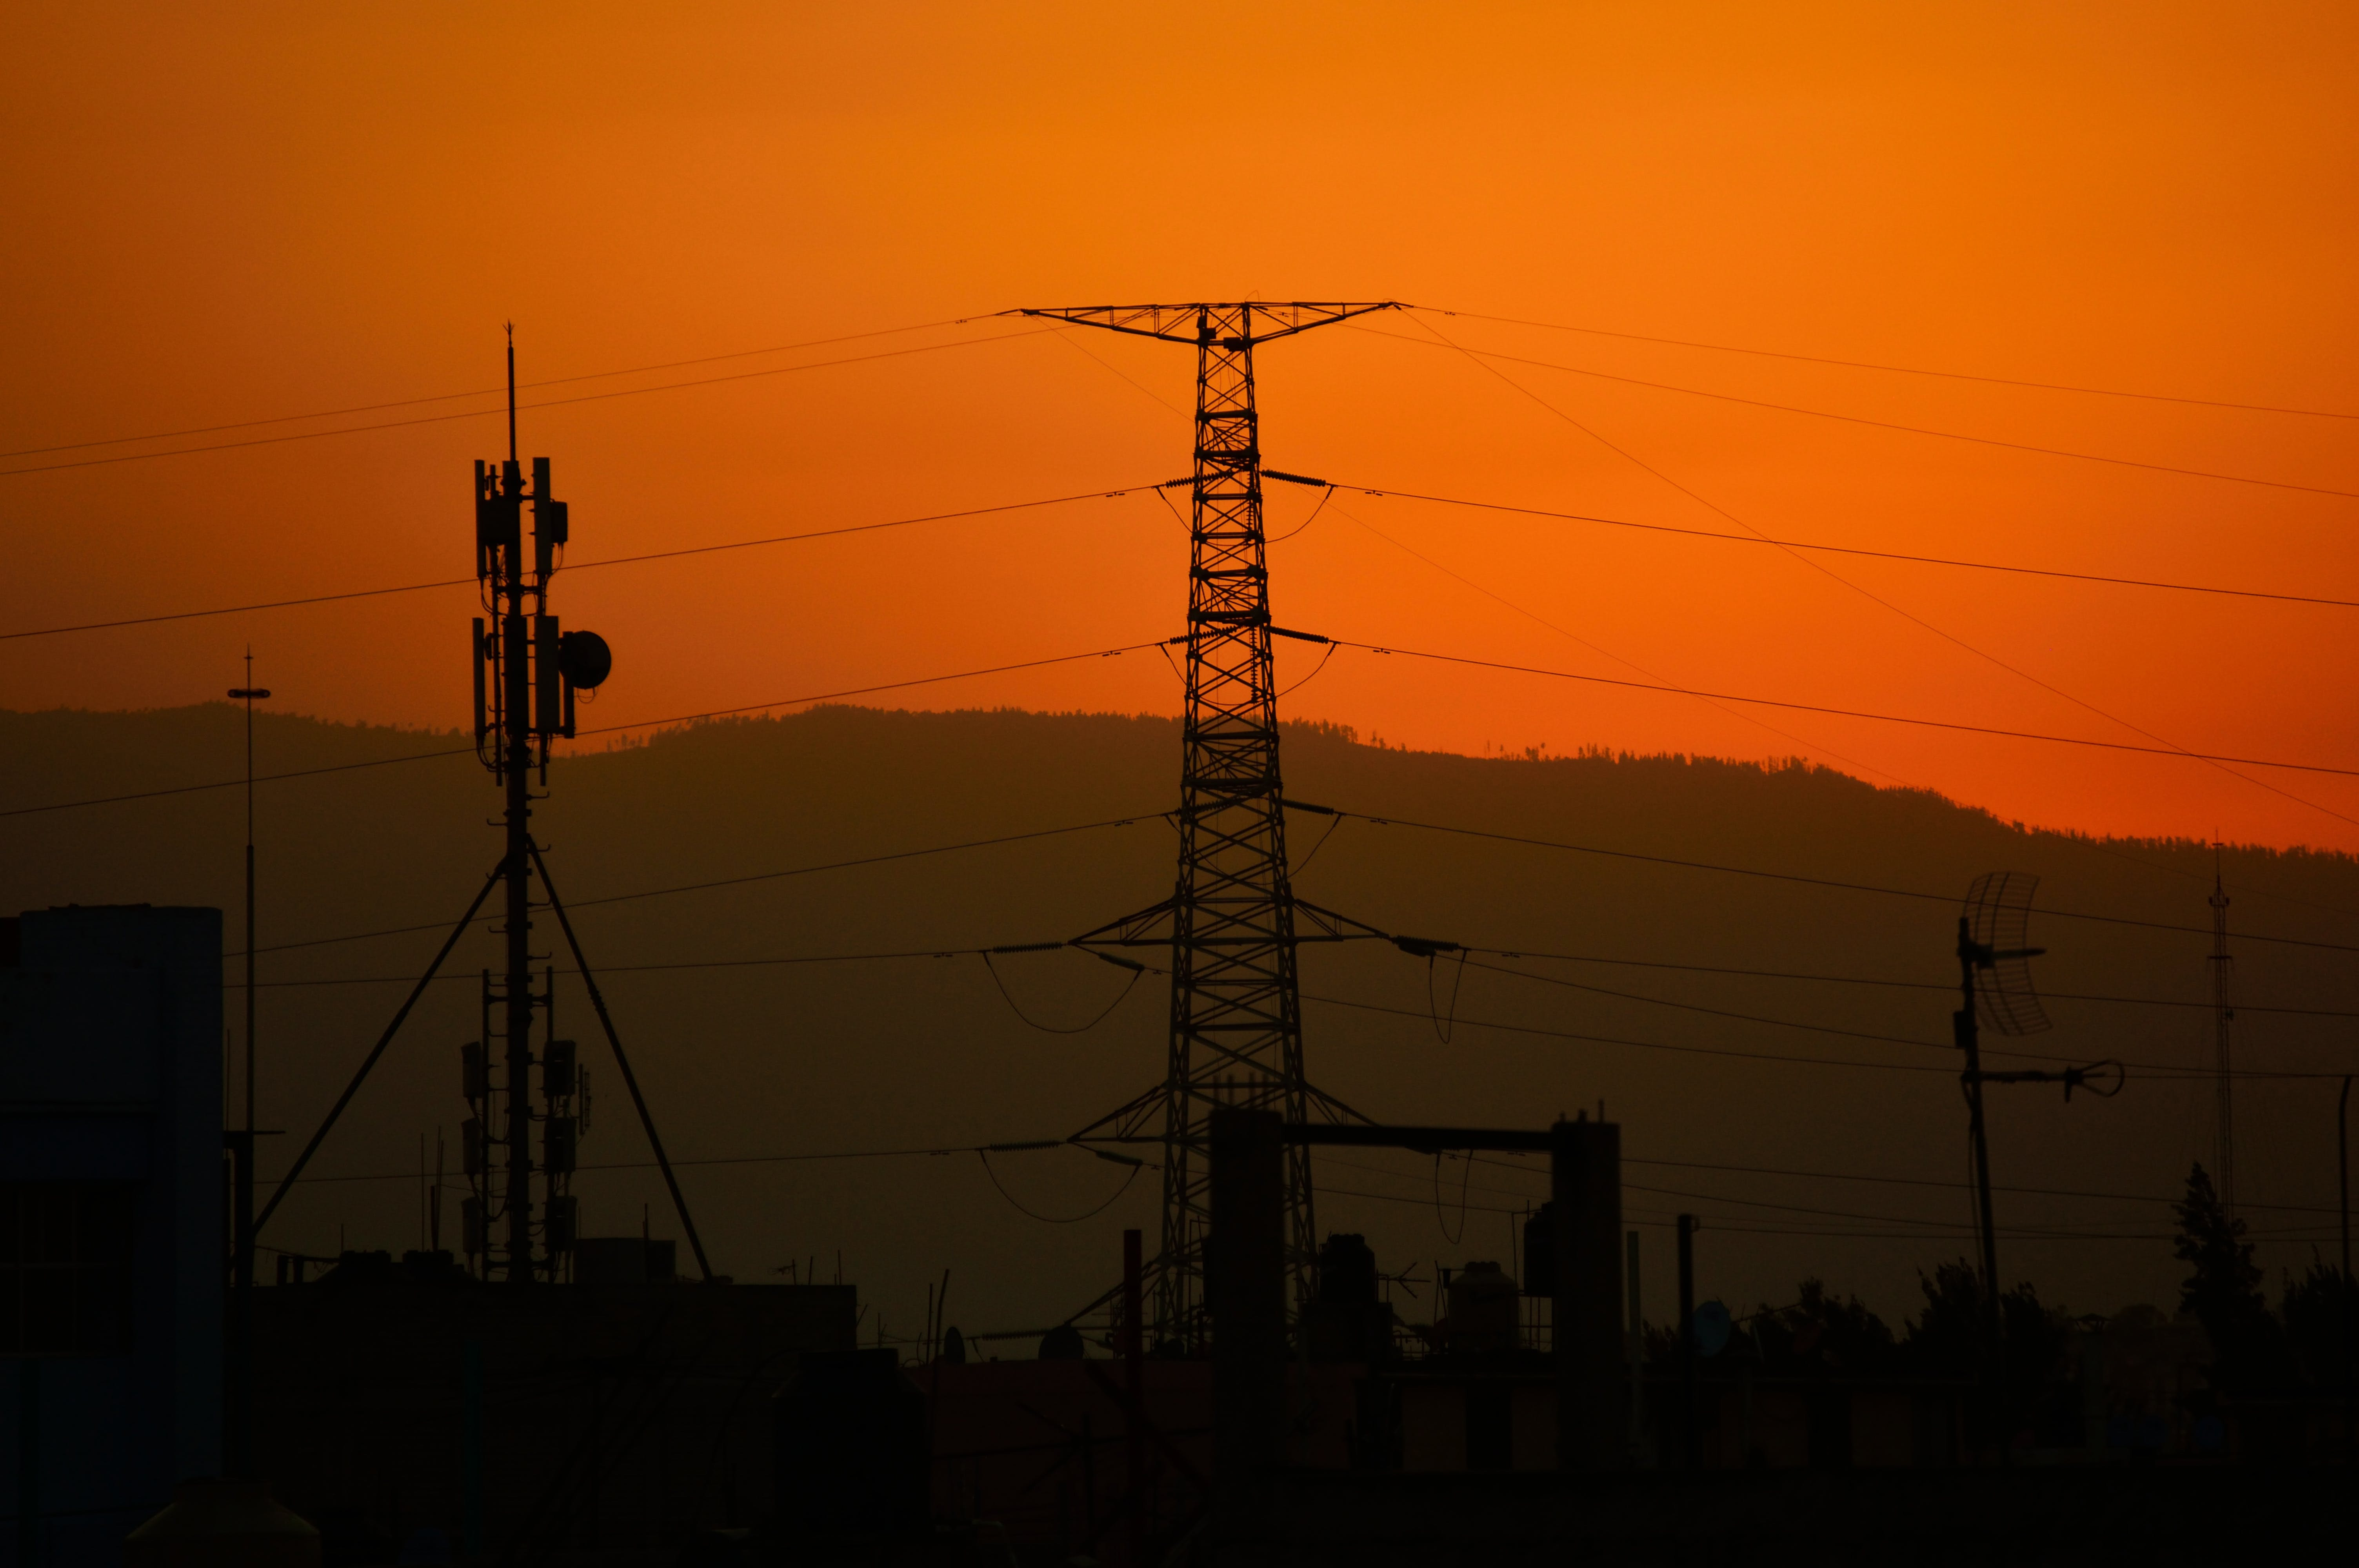 Silhouette of Transmission Tower